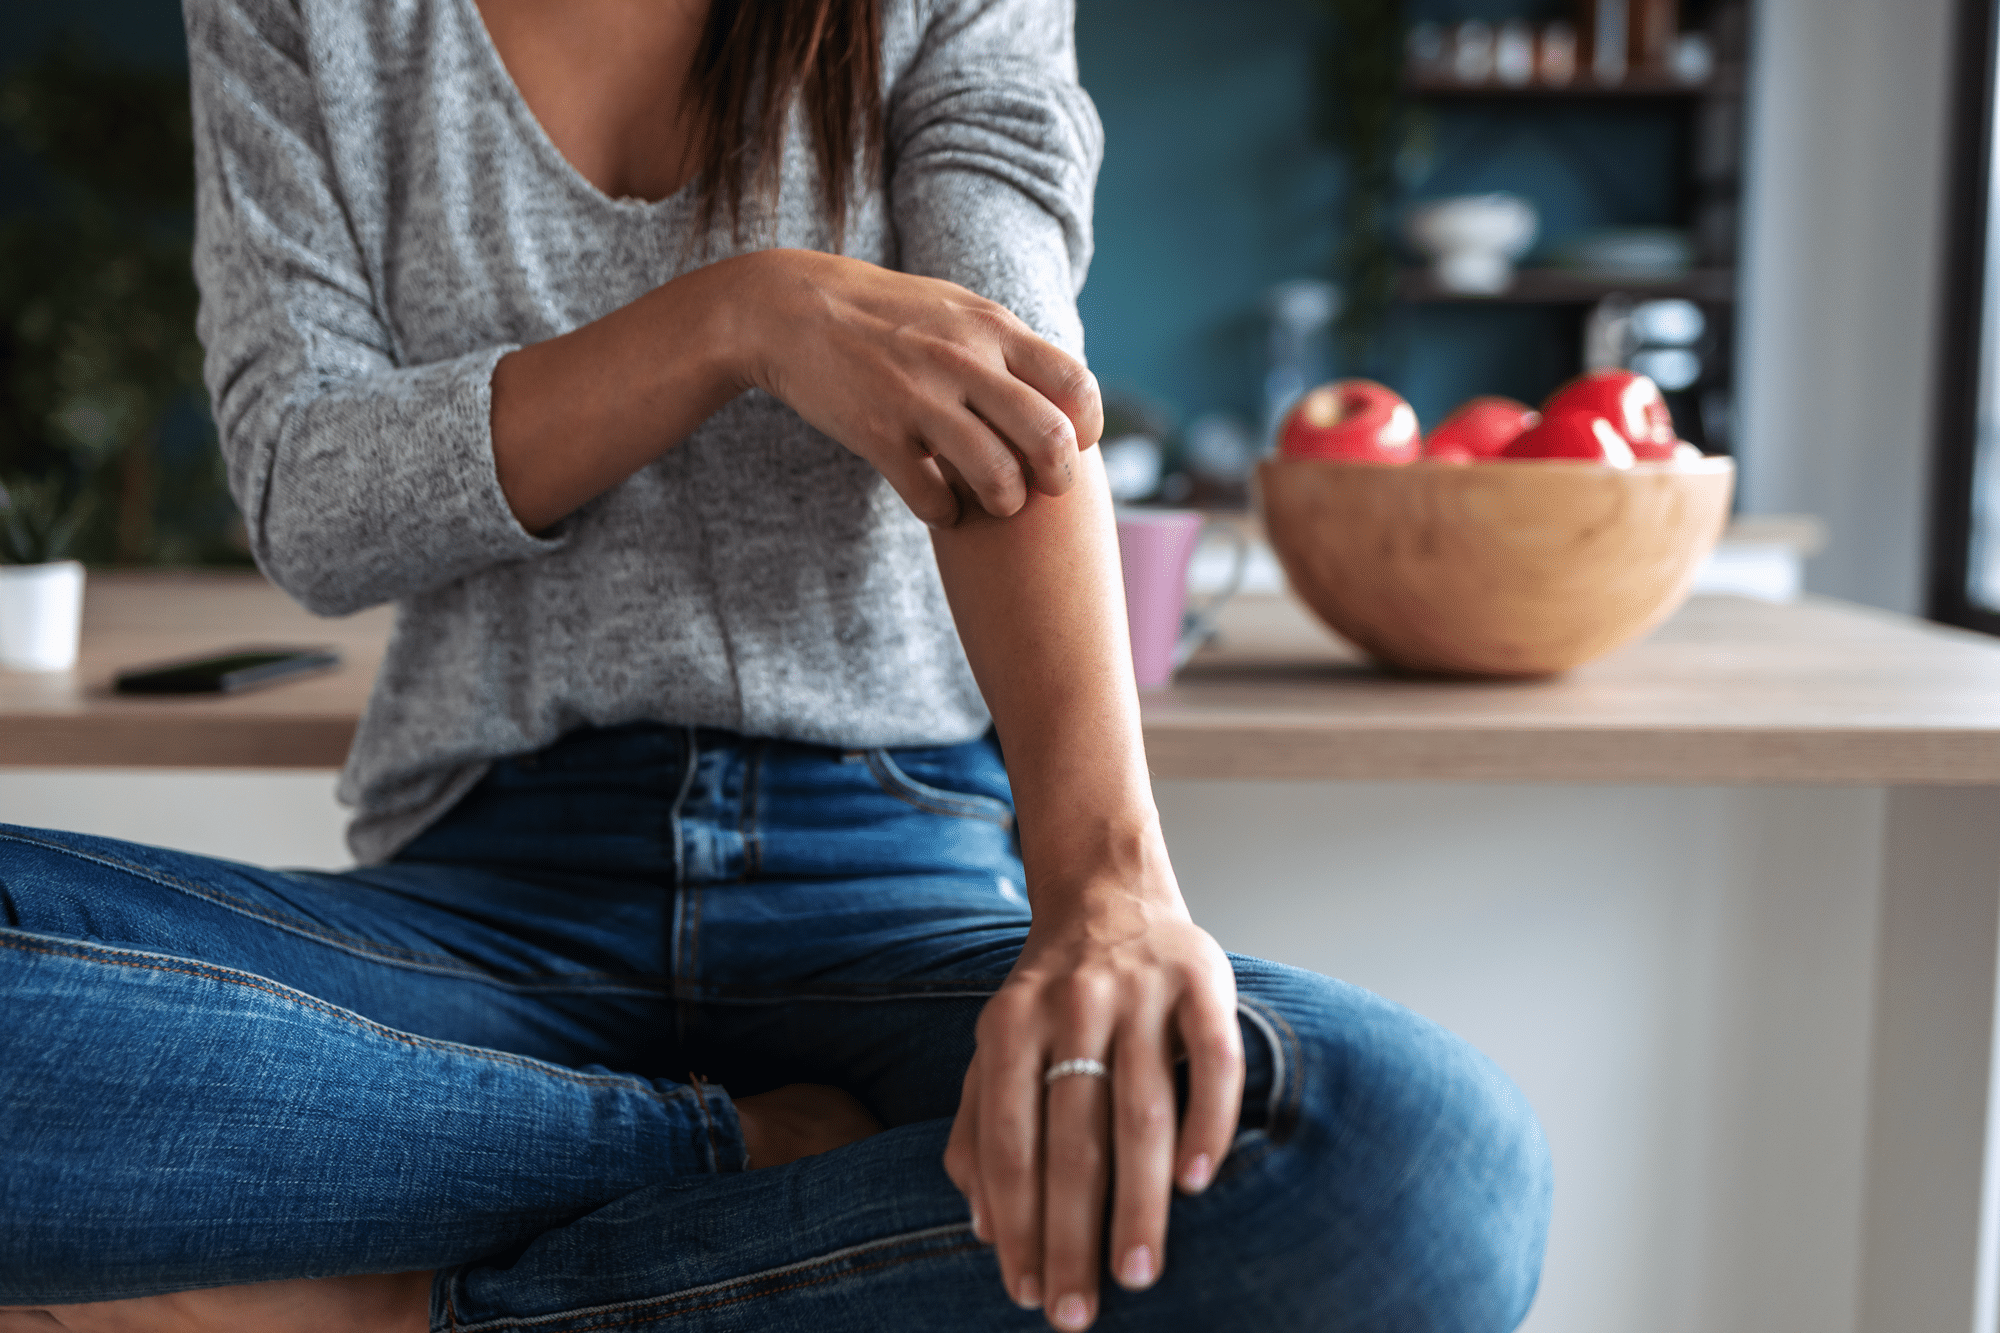 Cannabidiol For Psoriasis: Can CBD Help With Psoriasis?